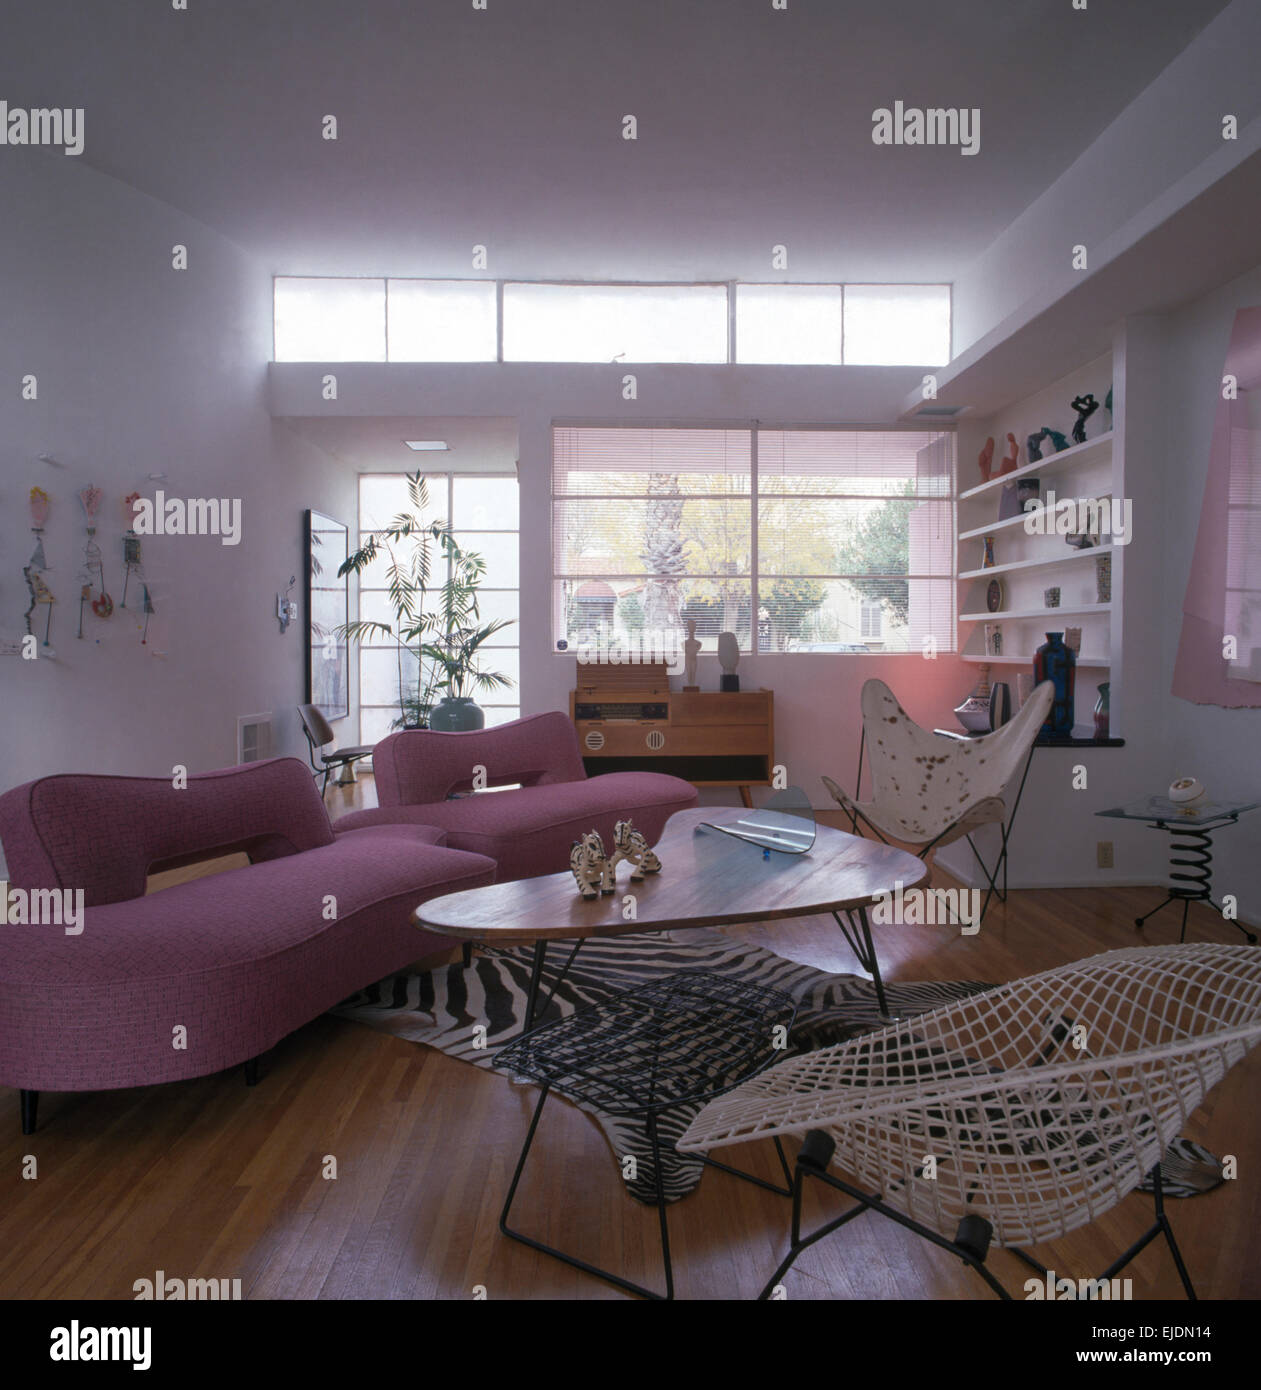 Surprising Pink Sofas And Cowhide Hardoy Bkf Butterfly Chairs With Caraccident5 Cool Chair Designs And Ideas Caraccident5Info